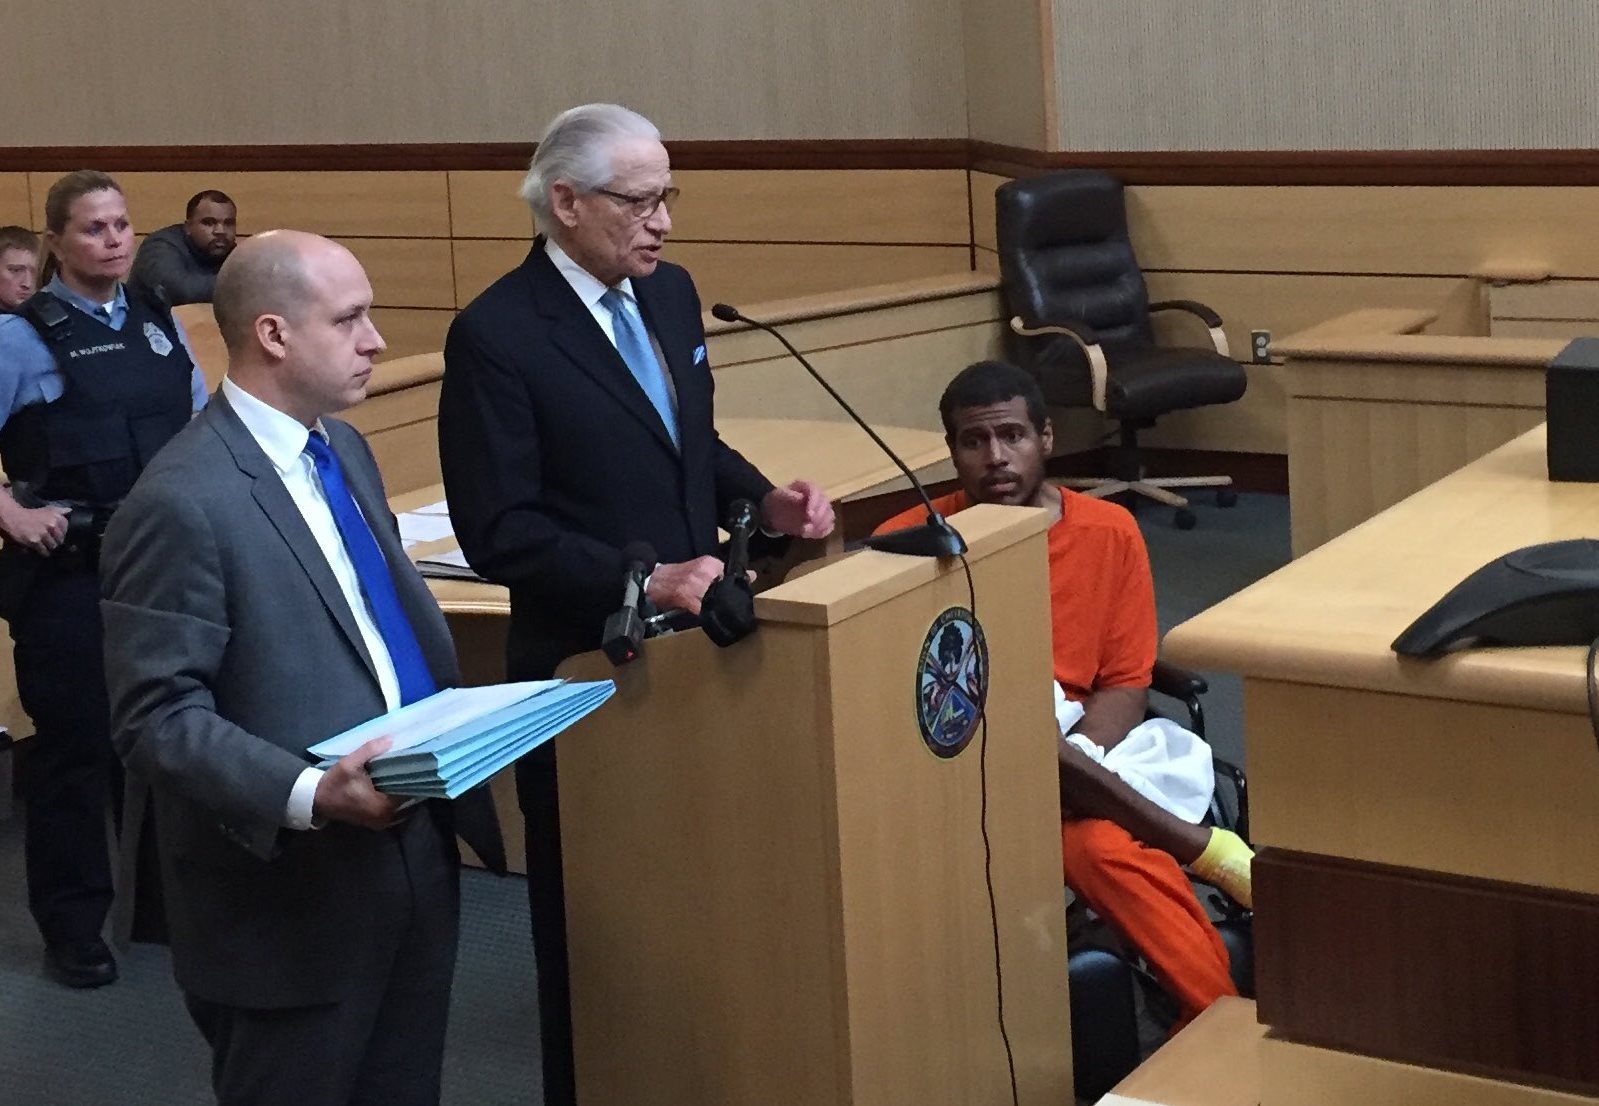 SirWilliam Hardy, right, appeared in Cheektowaga Town Court on Friday. He is accused of fatally shooting his father, William Hardy.  At center is defense attorney Joel L. Daniels and at left is Assistant District Attorney Michael Smith. (Aaron Besecker/Buffalo News)